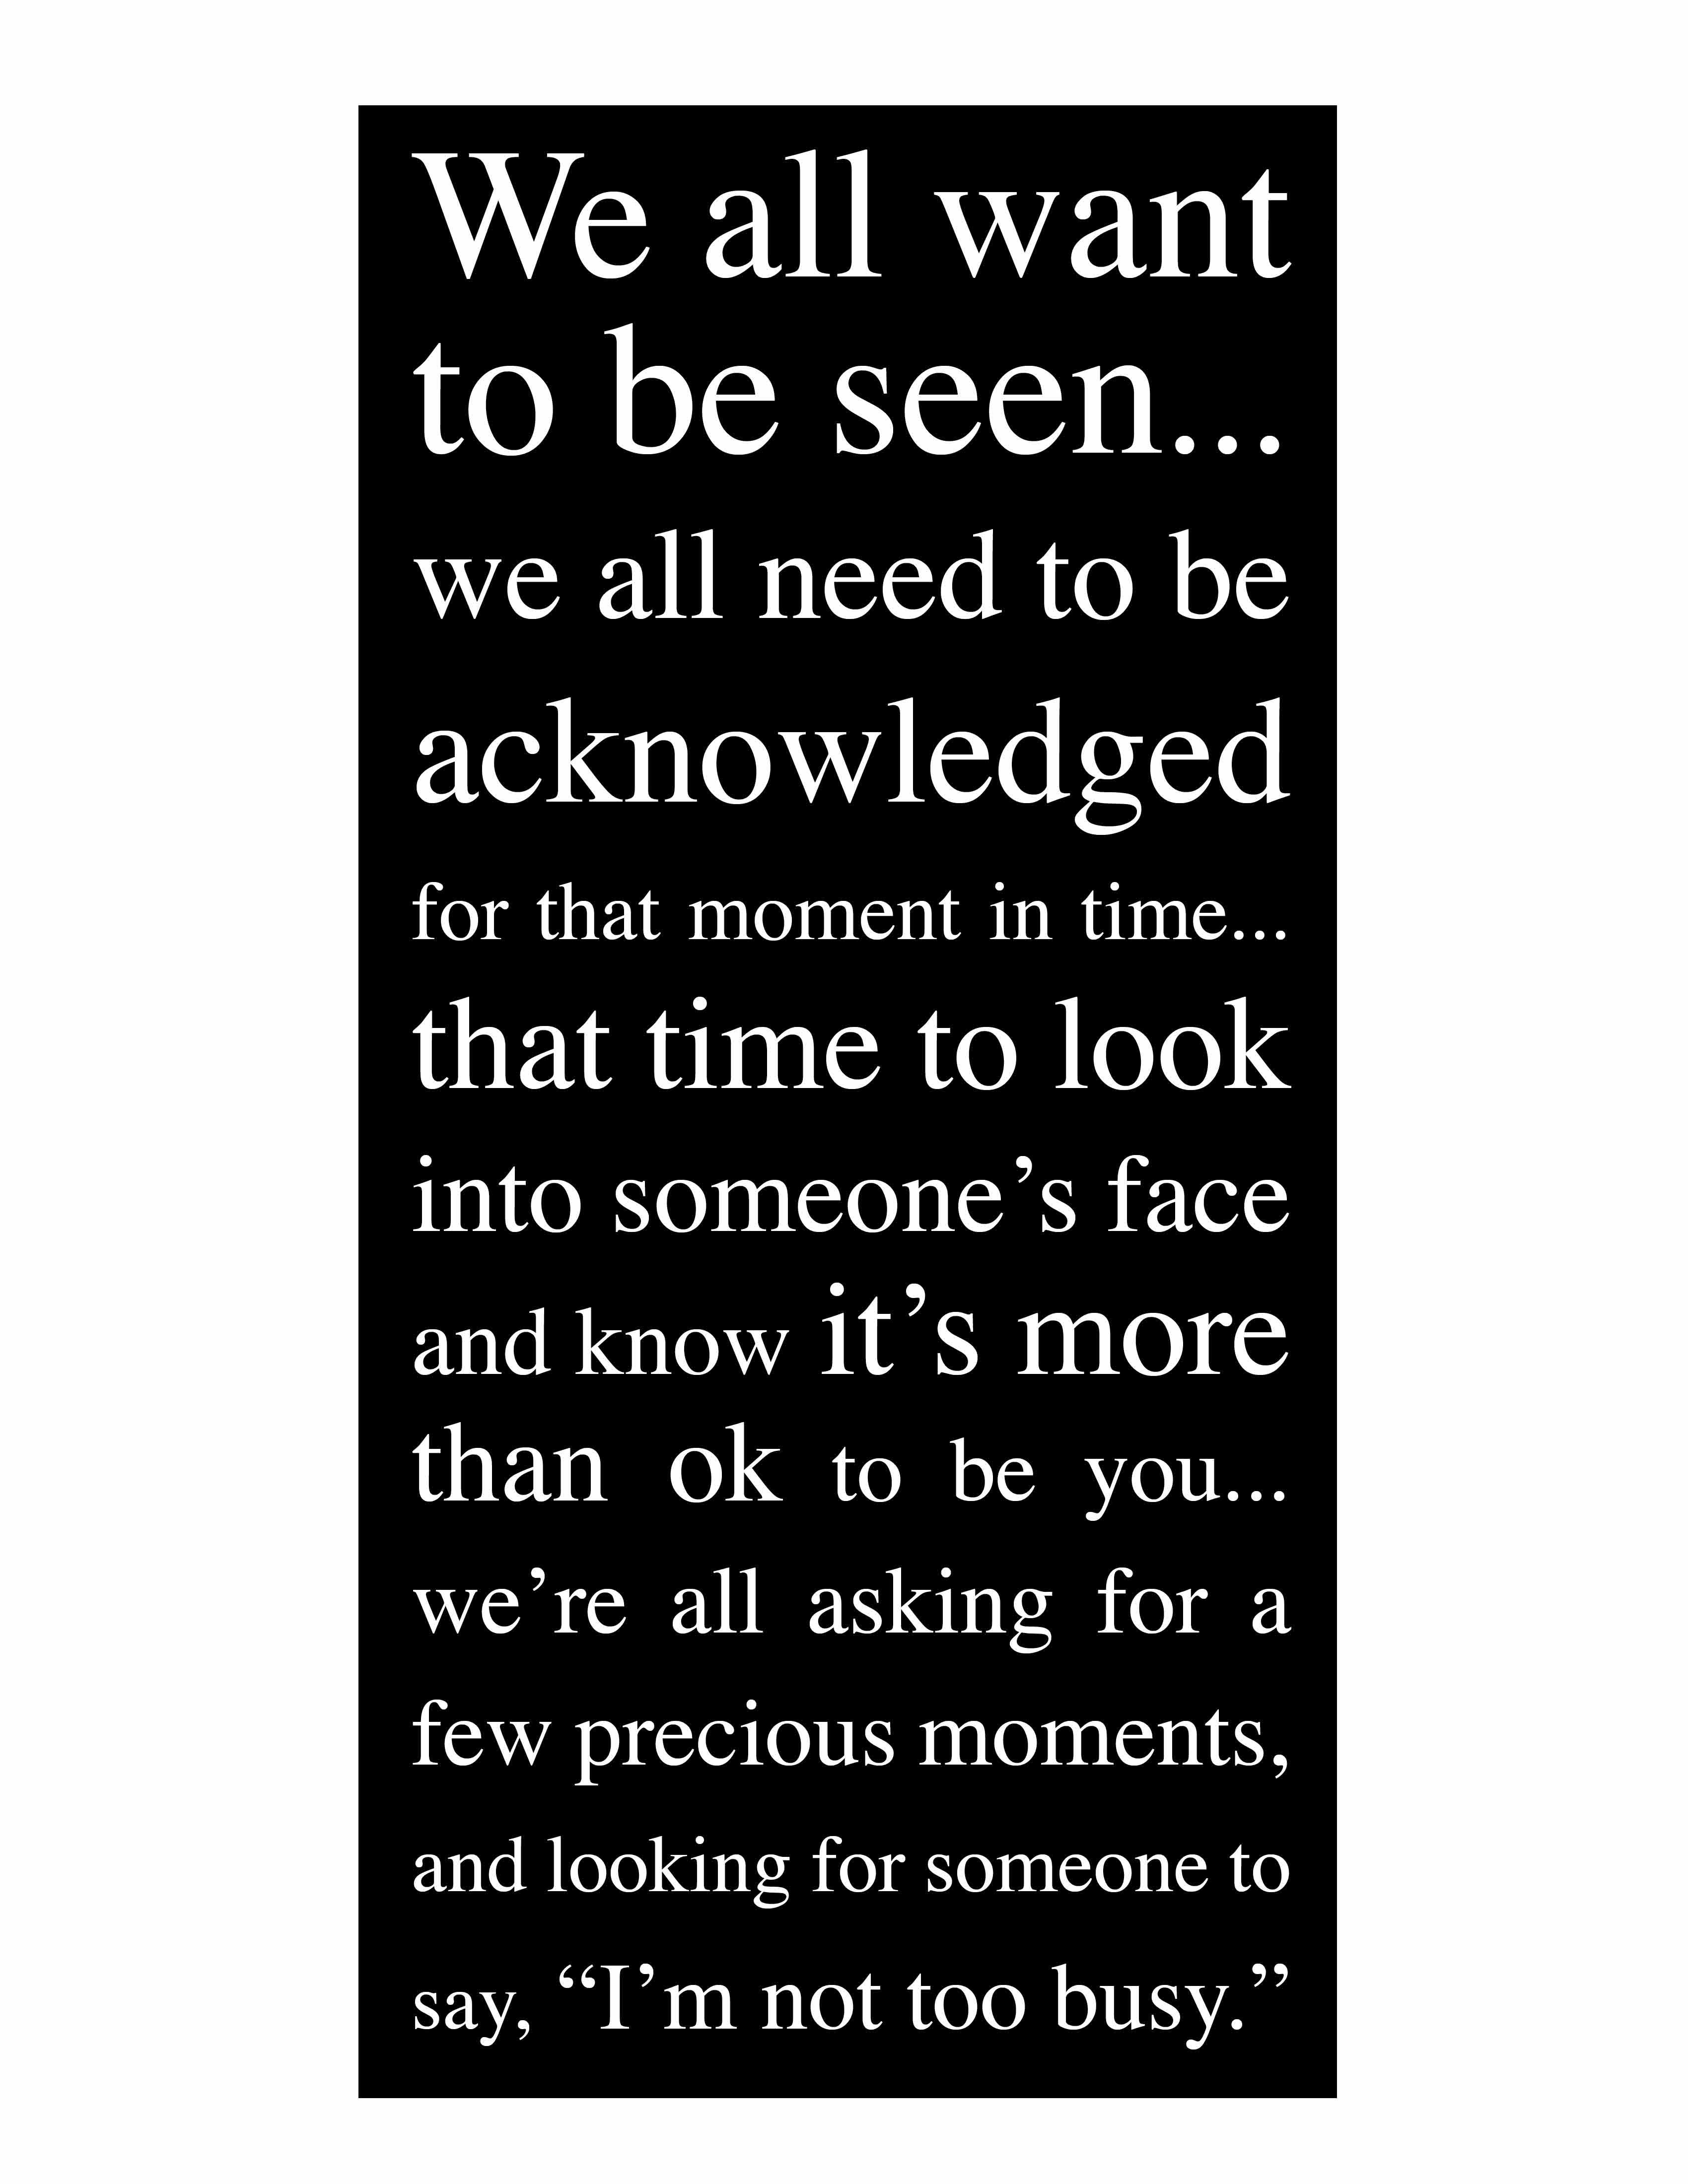 We All Want To Be Seen By Jodi Hills Available In Print Card And Magnet Www Jodihills Com Wise Words Quotes Inspirational Words Seeing Quotes